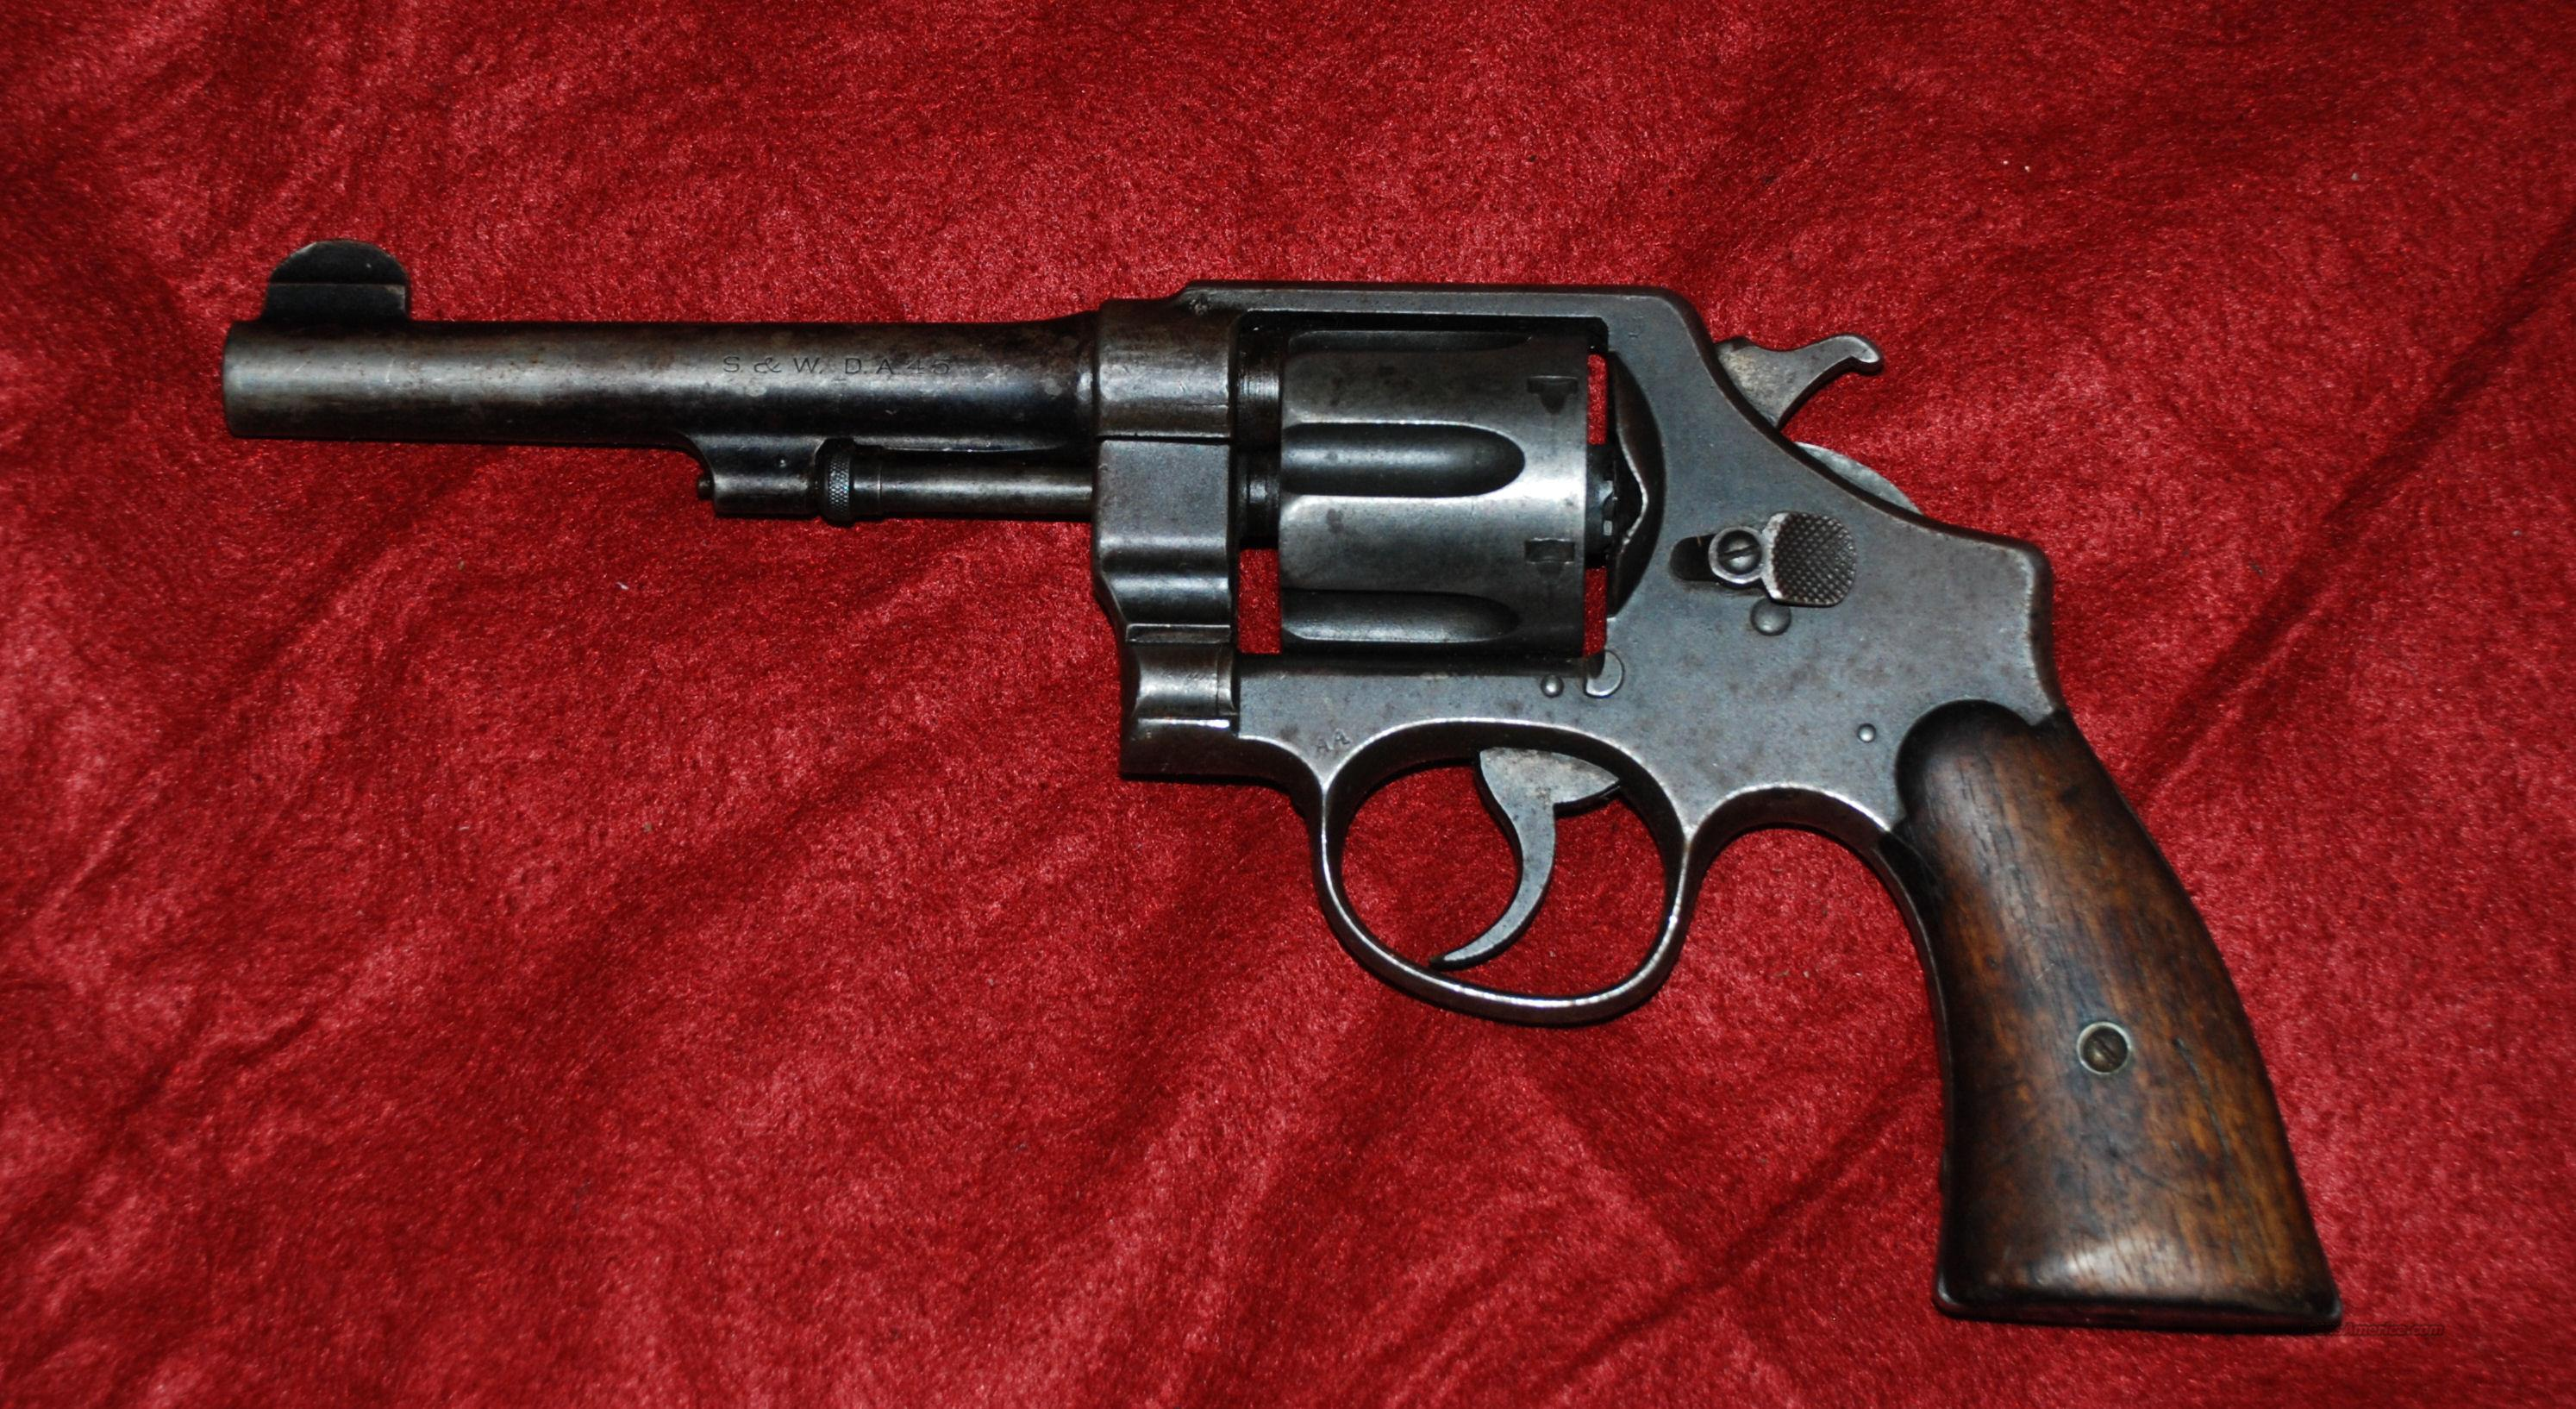 S&W DA .45 - Model 1917 Military .45 acp  Guns > Pistols > Smith & Wesson Revolvers > Pre-1945